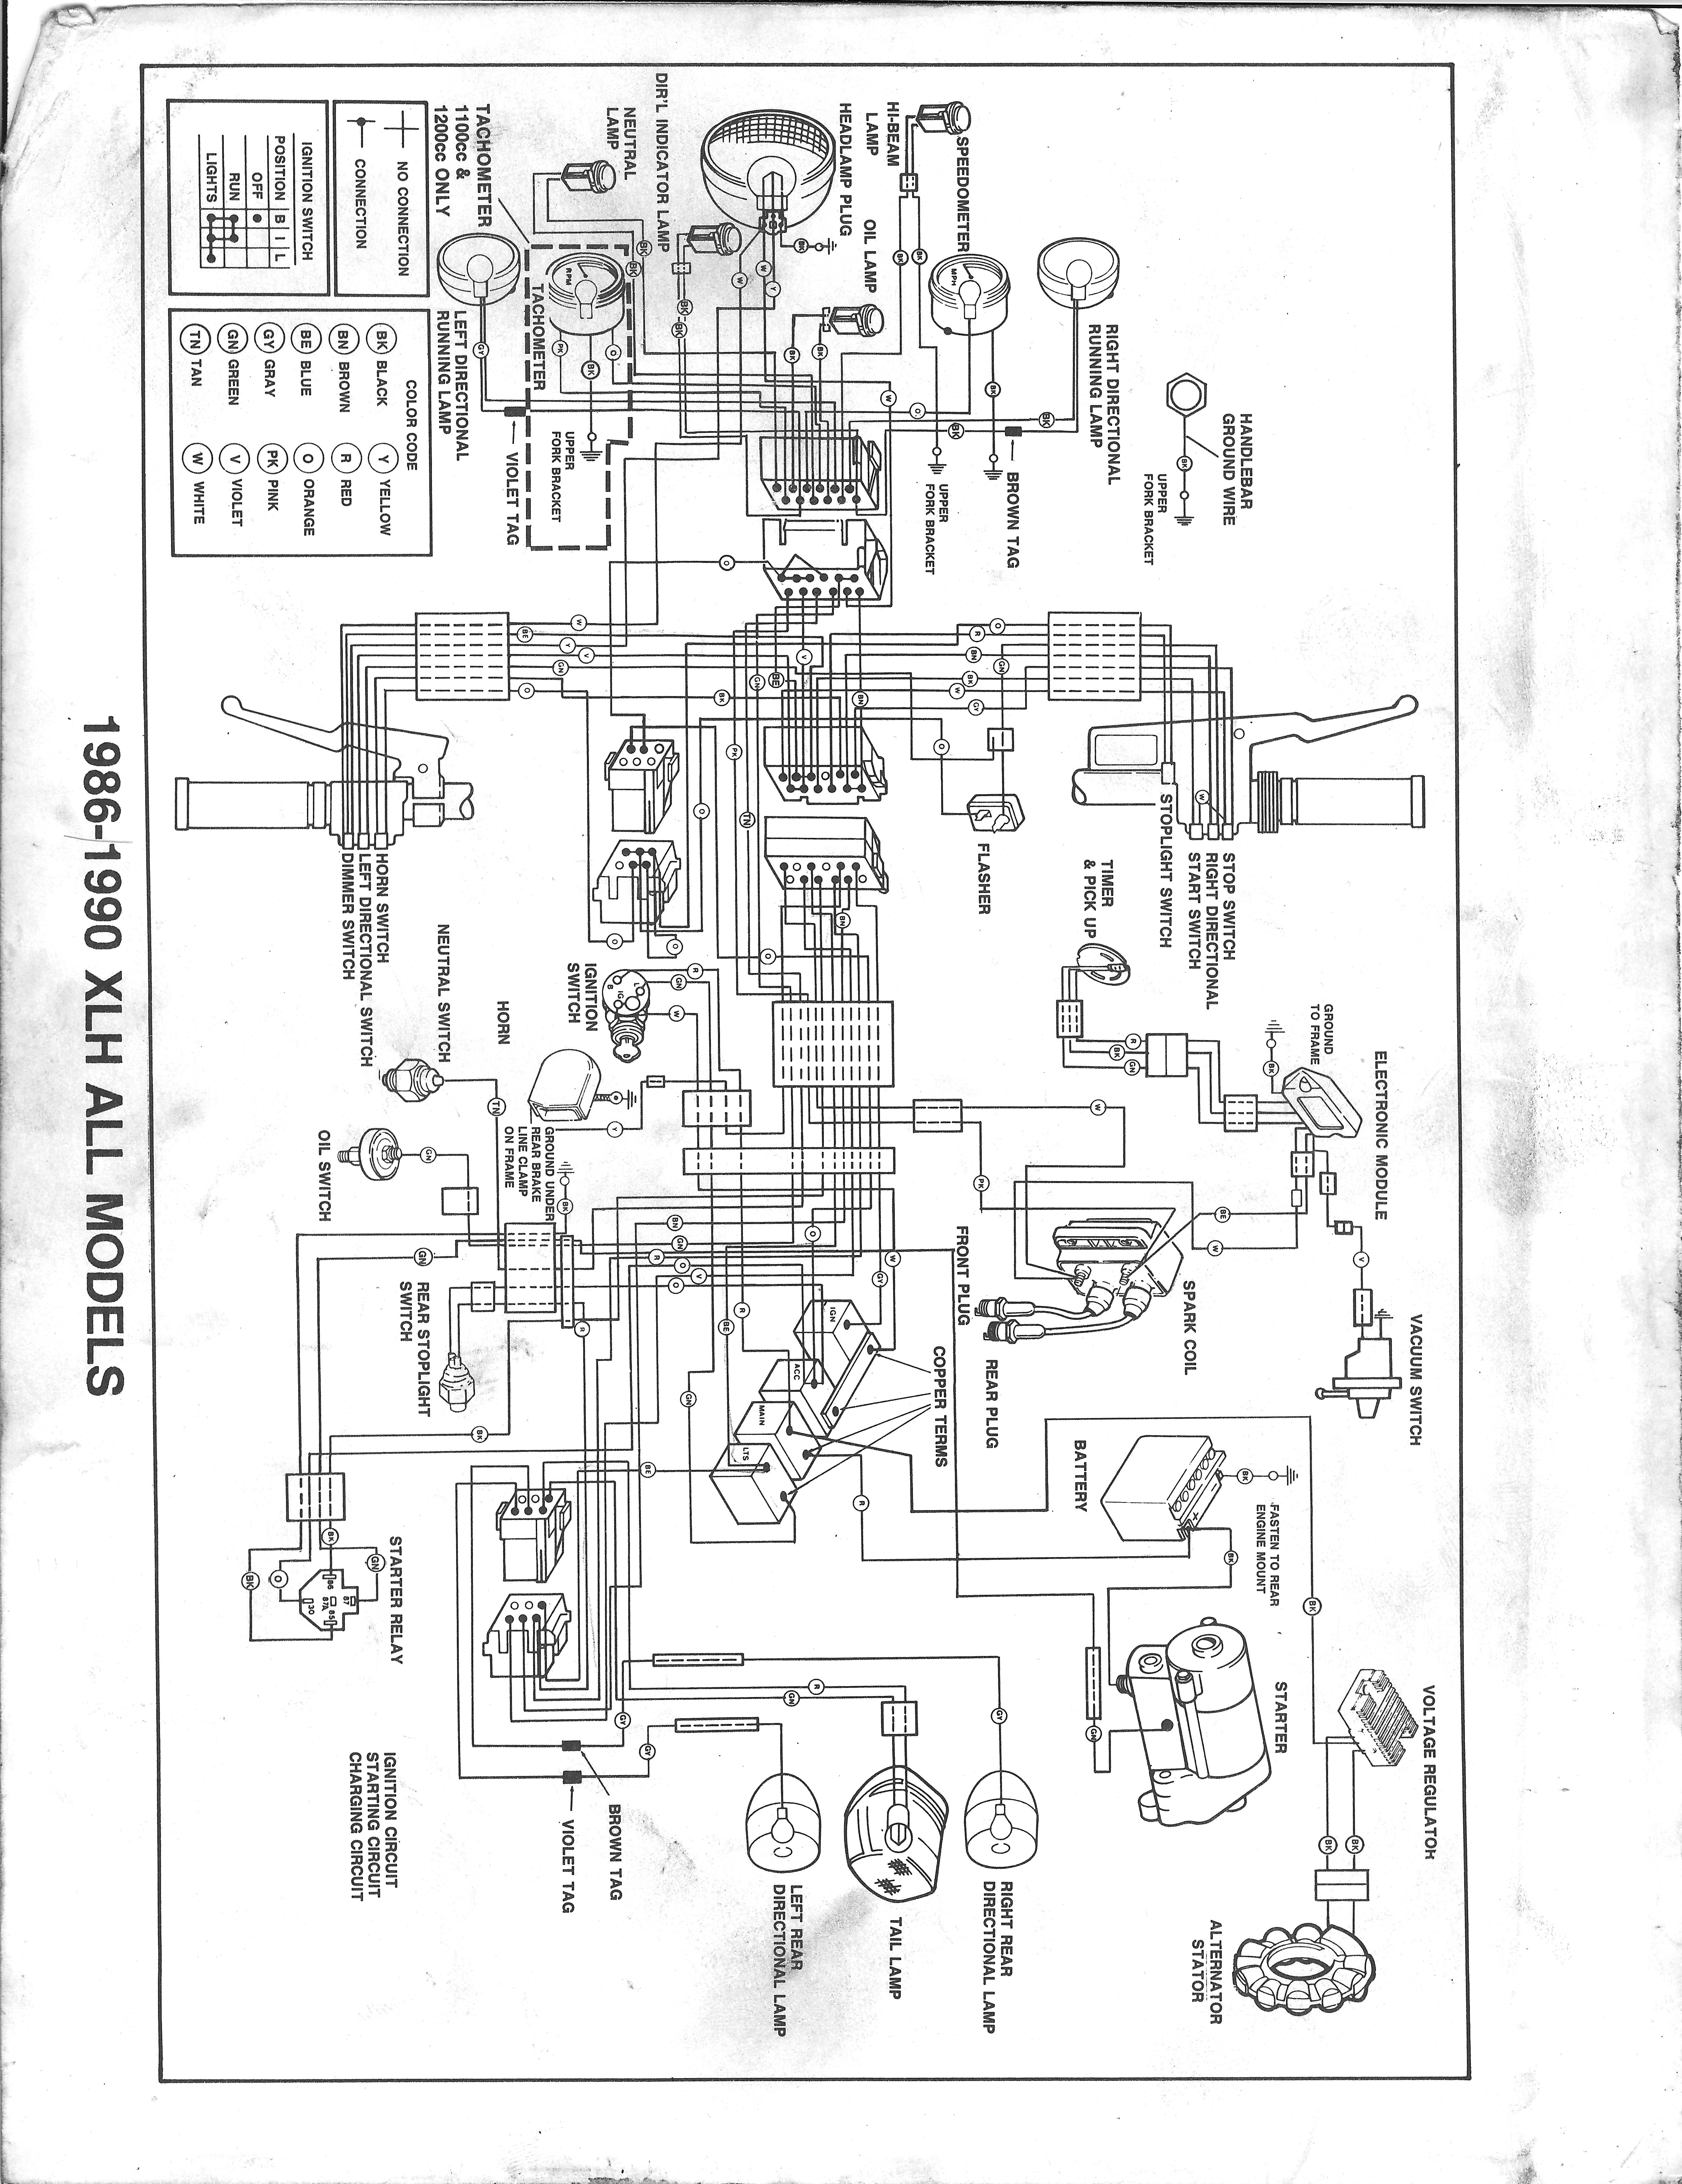 1988 Sportster Wiring Diagram Archive Of Automotive 2003 Harley 883 Dreaded Click Starter Not Working Please Help Rh Hdforums Com Davidson